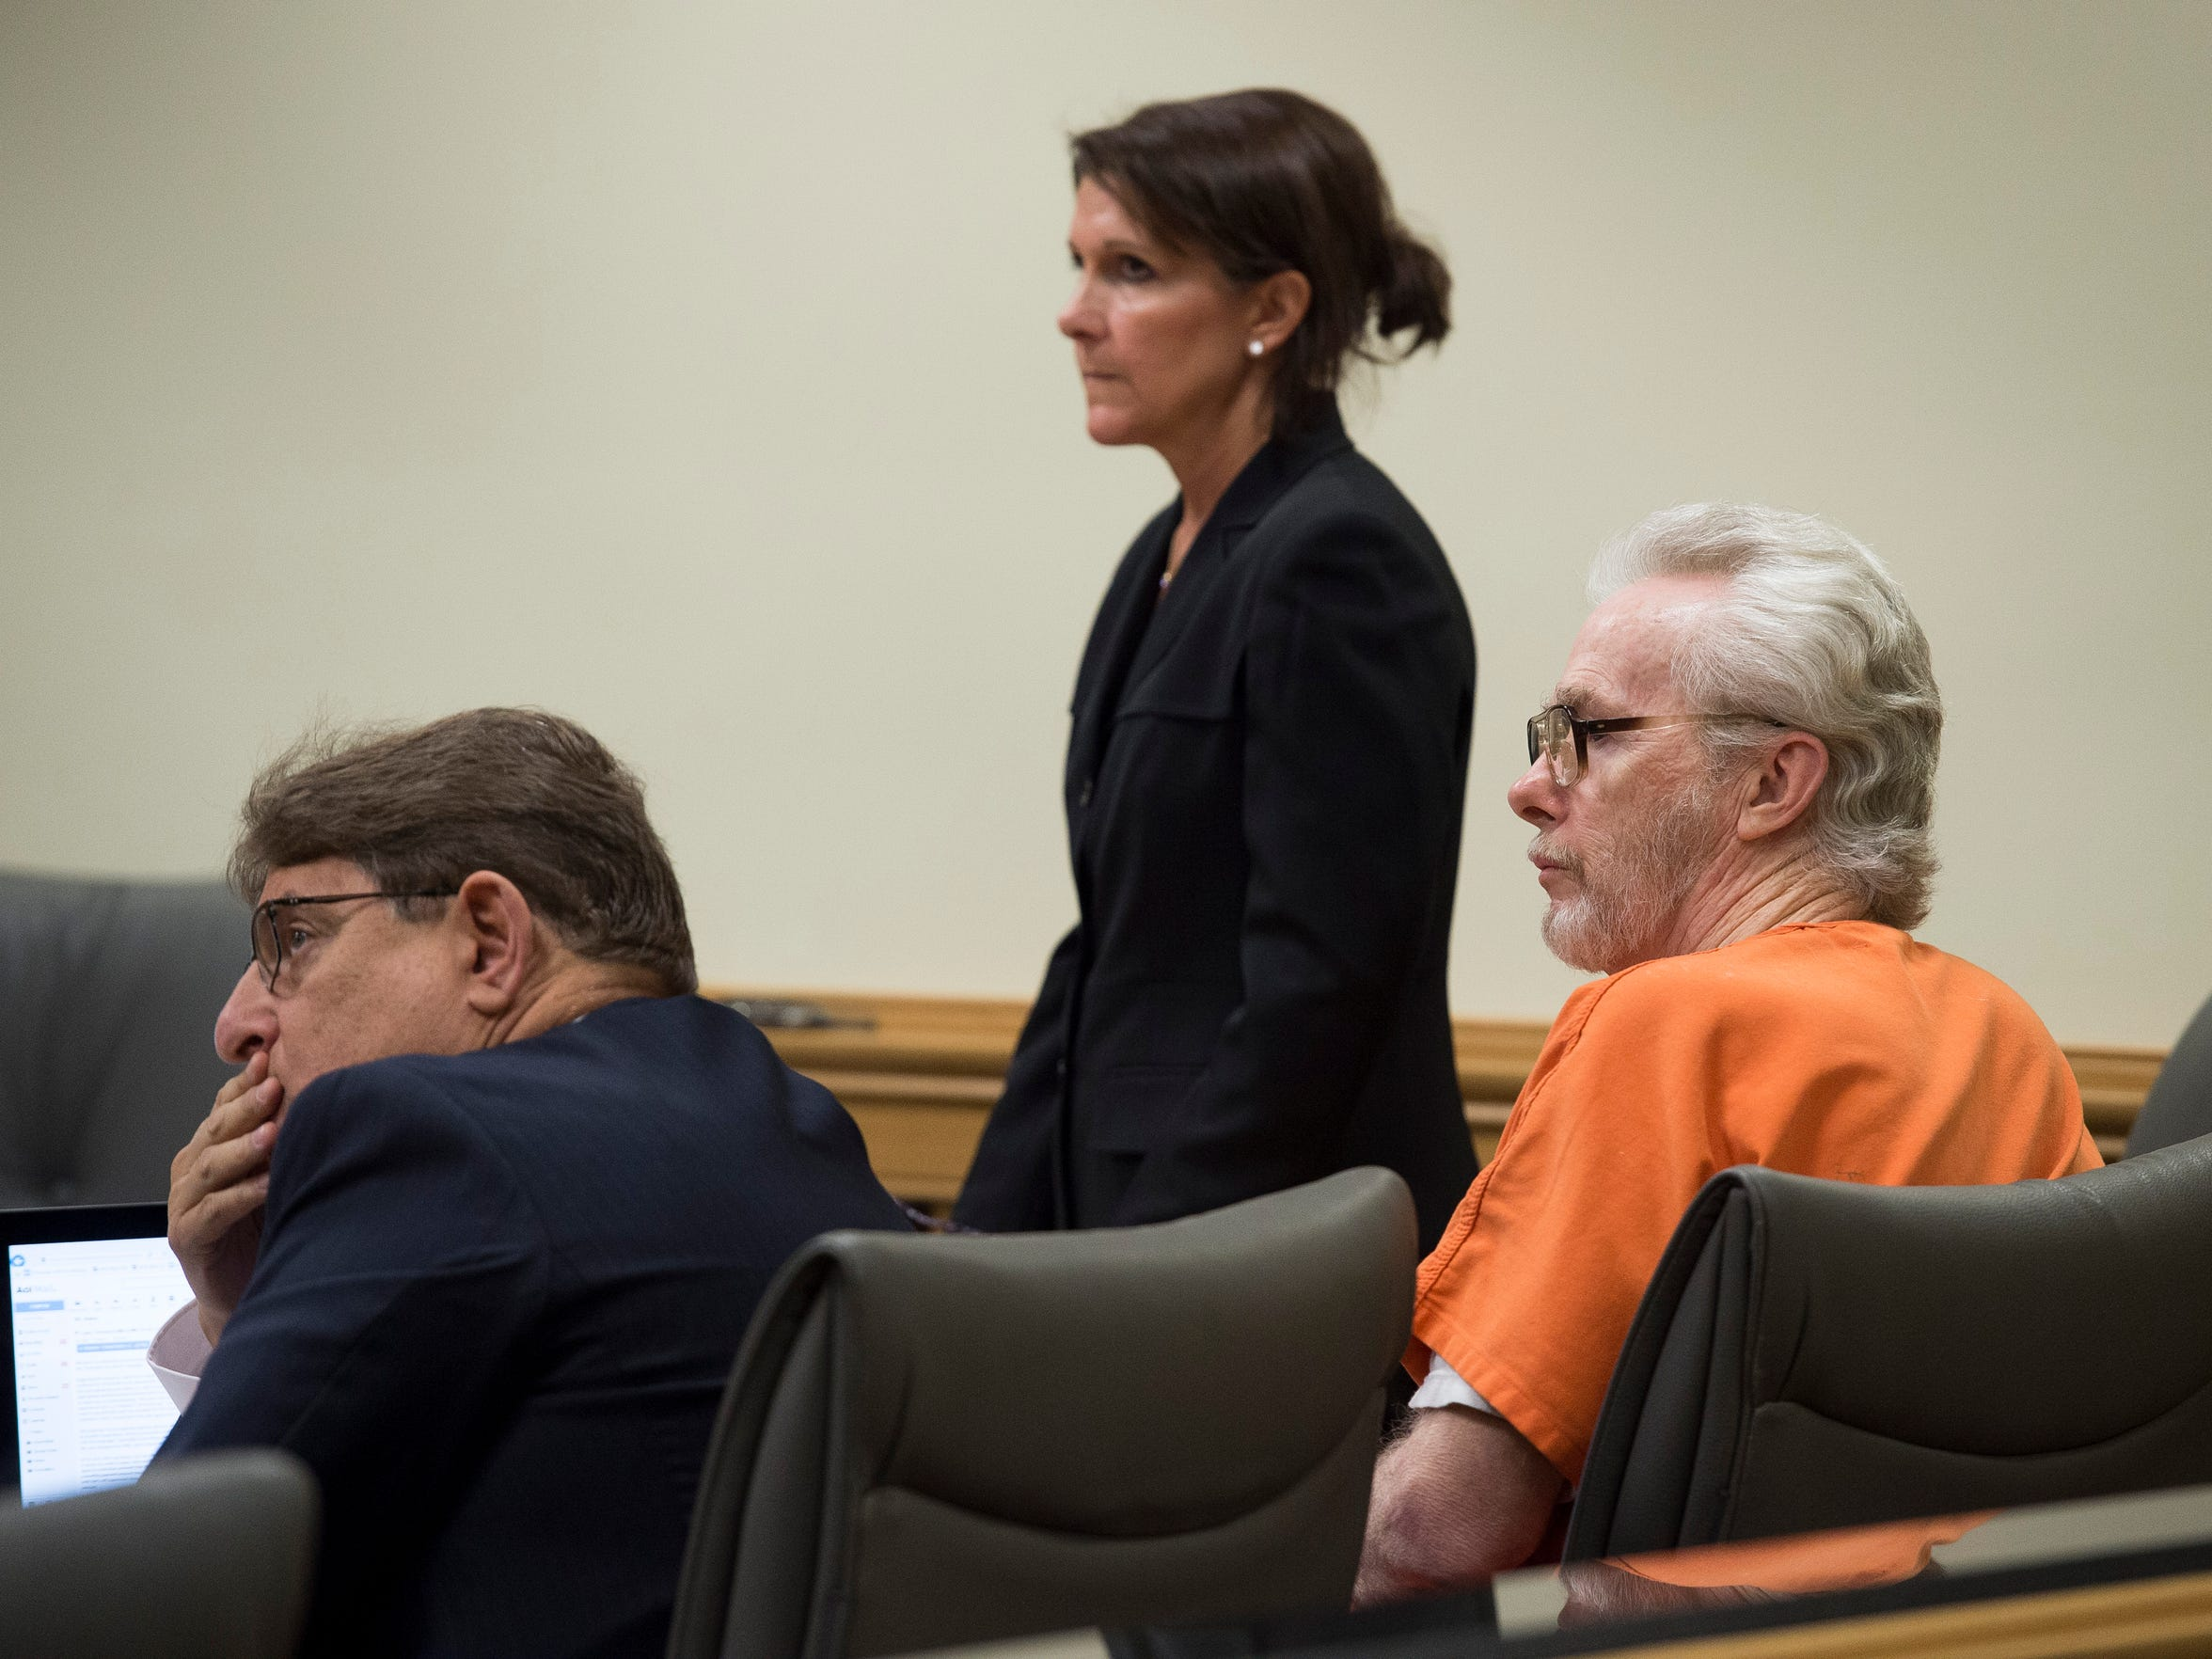 James Morgan (right), who killed 66-year-old Gertrude Trbovich in 1977 when he was 16 years-old, appears in court with defense attorneys Michael Salnick (left) and Lisa Viscome on Monday, June 11, 2018, at the Martin County Courthouse in Stuart. Despite four murder trials, four death sentences, one parole hearing and being sentenced to a life term in prison, Morgan, 57, is eligible for a resentencing because of a recent court ruling regarding juvenile murderers. To see more photos, go to TCPalm.com.